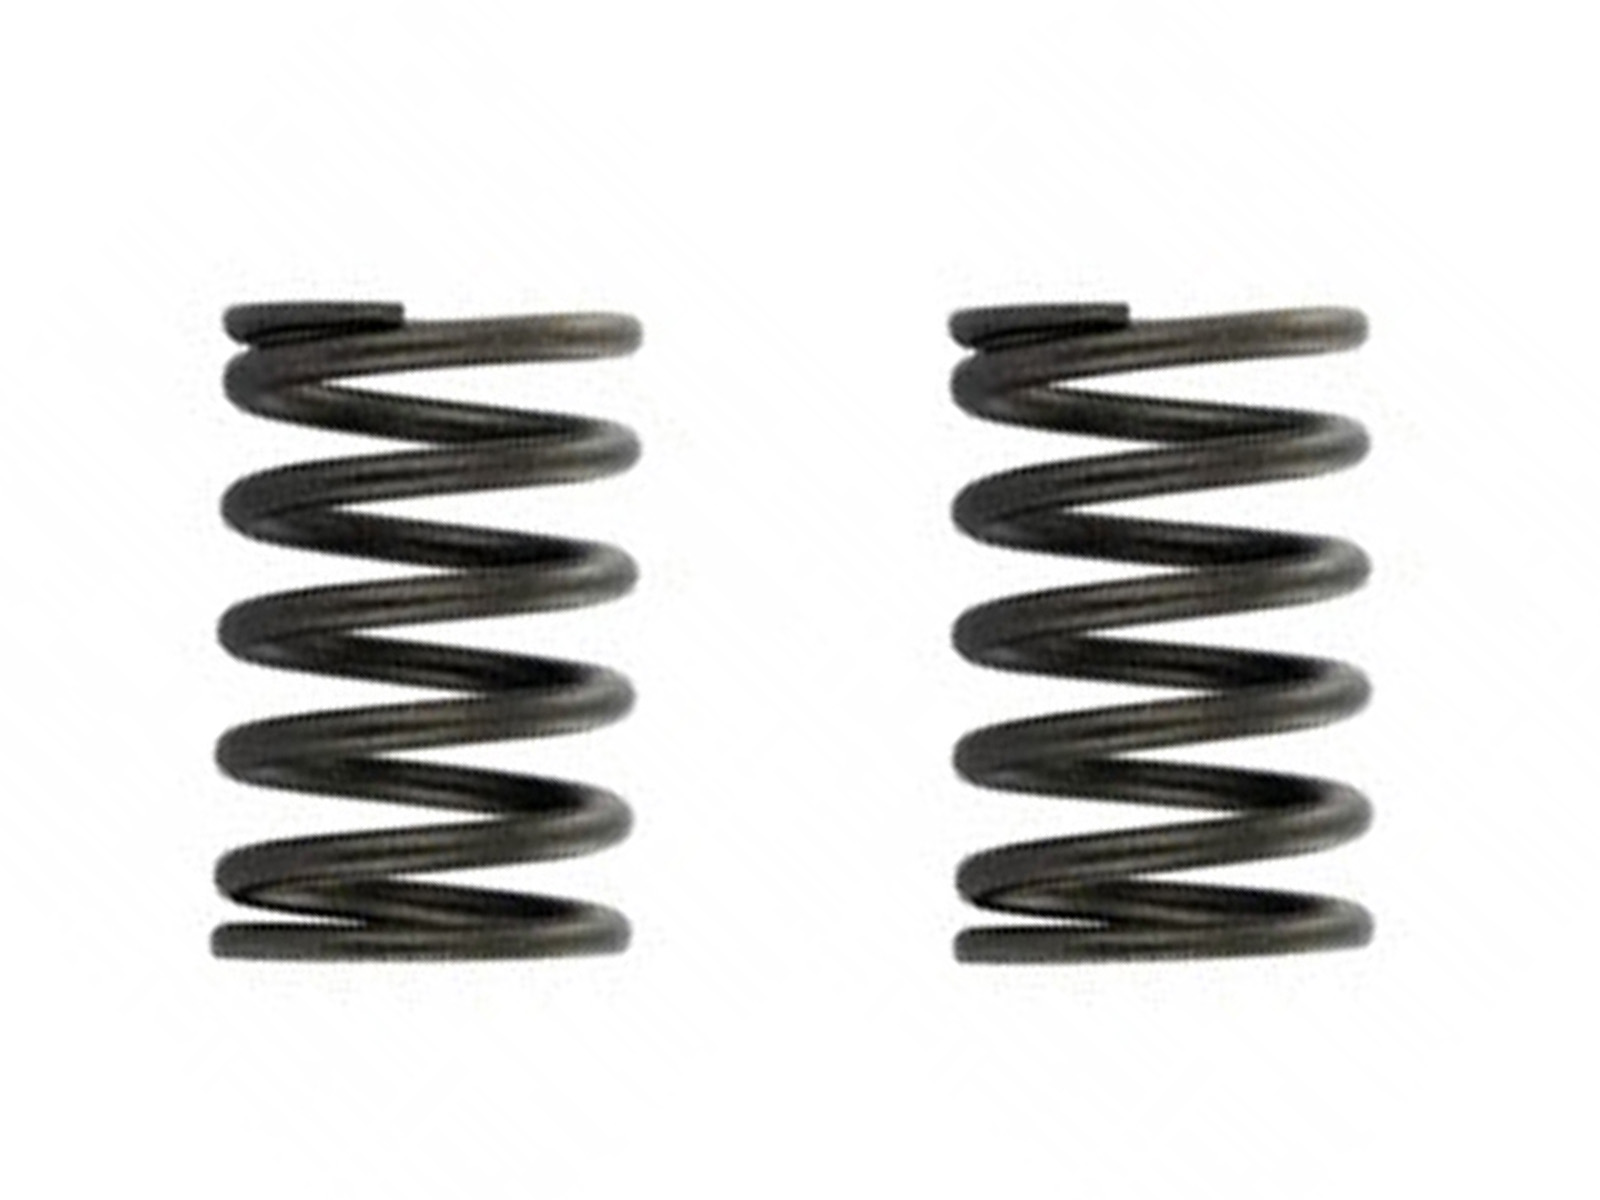 Proven Part Valve Springs Set of 2 for GX340-GX390